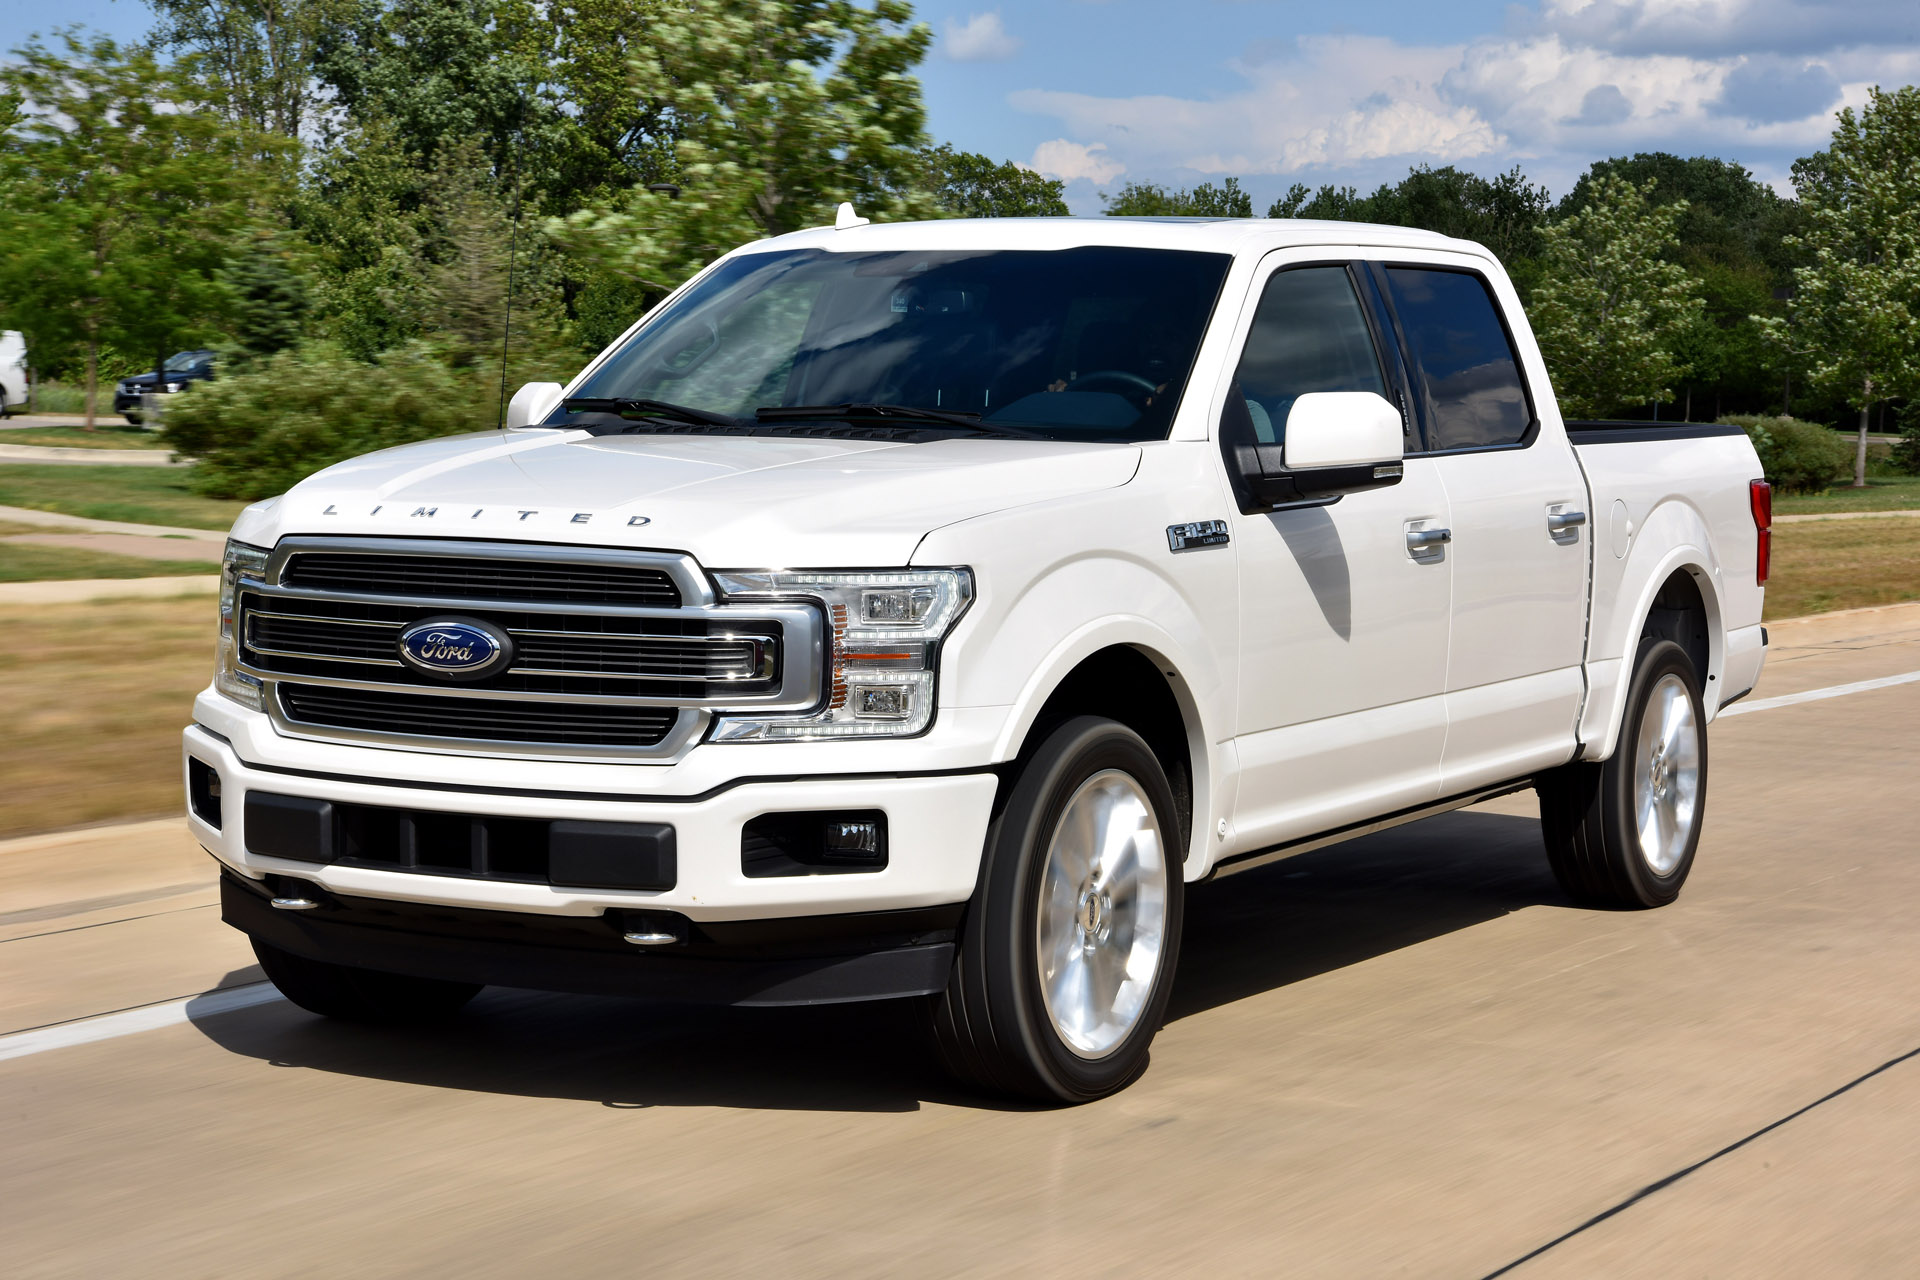 2018 ford f 150 first drive review so good you wont even notice